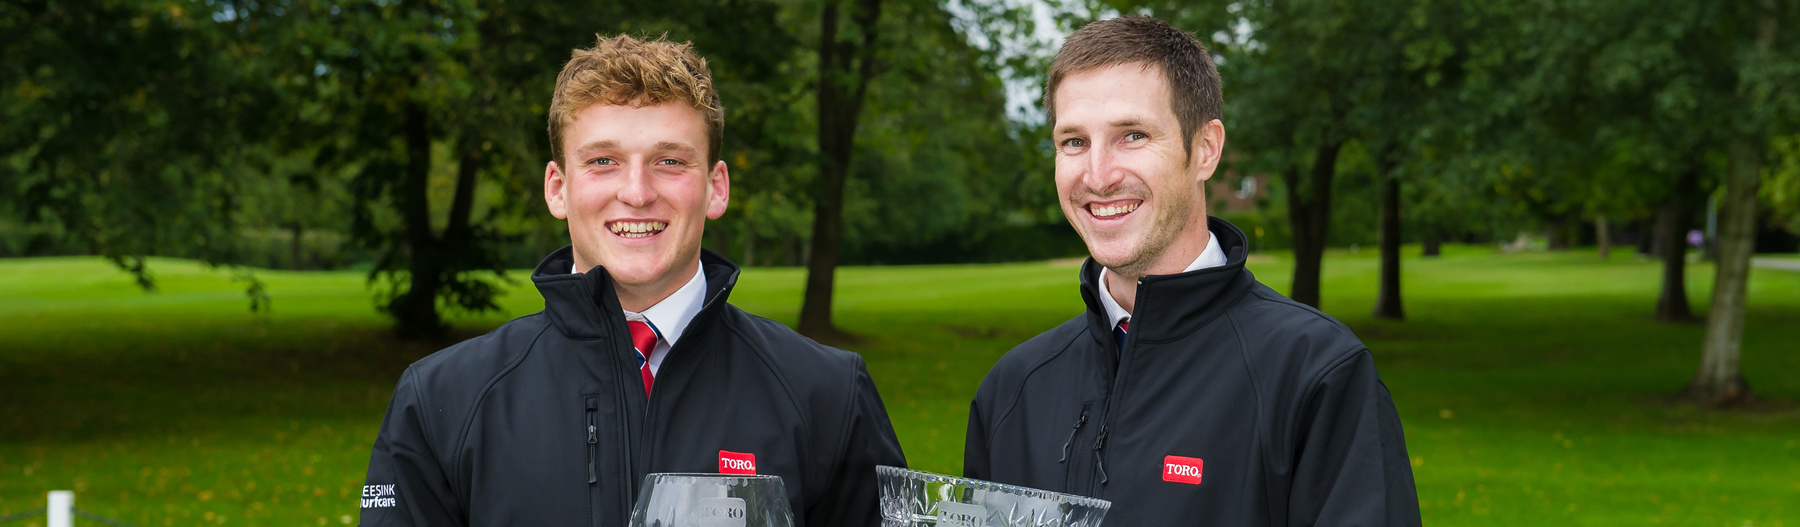 Toro Student Greenkeeper of the Year Award and Young Award